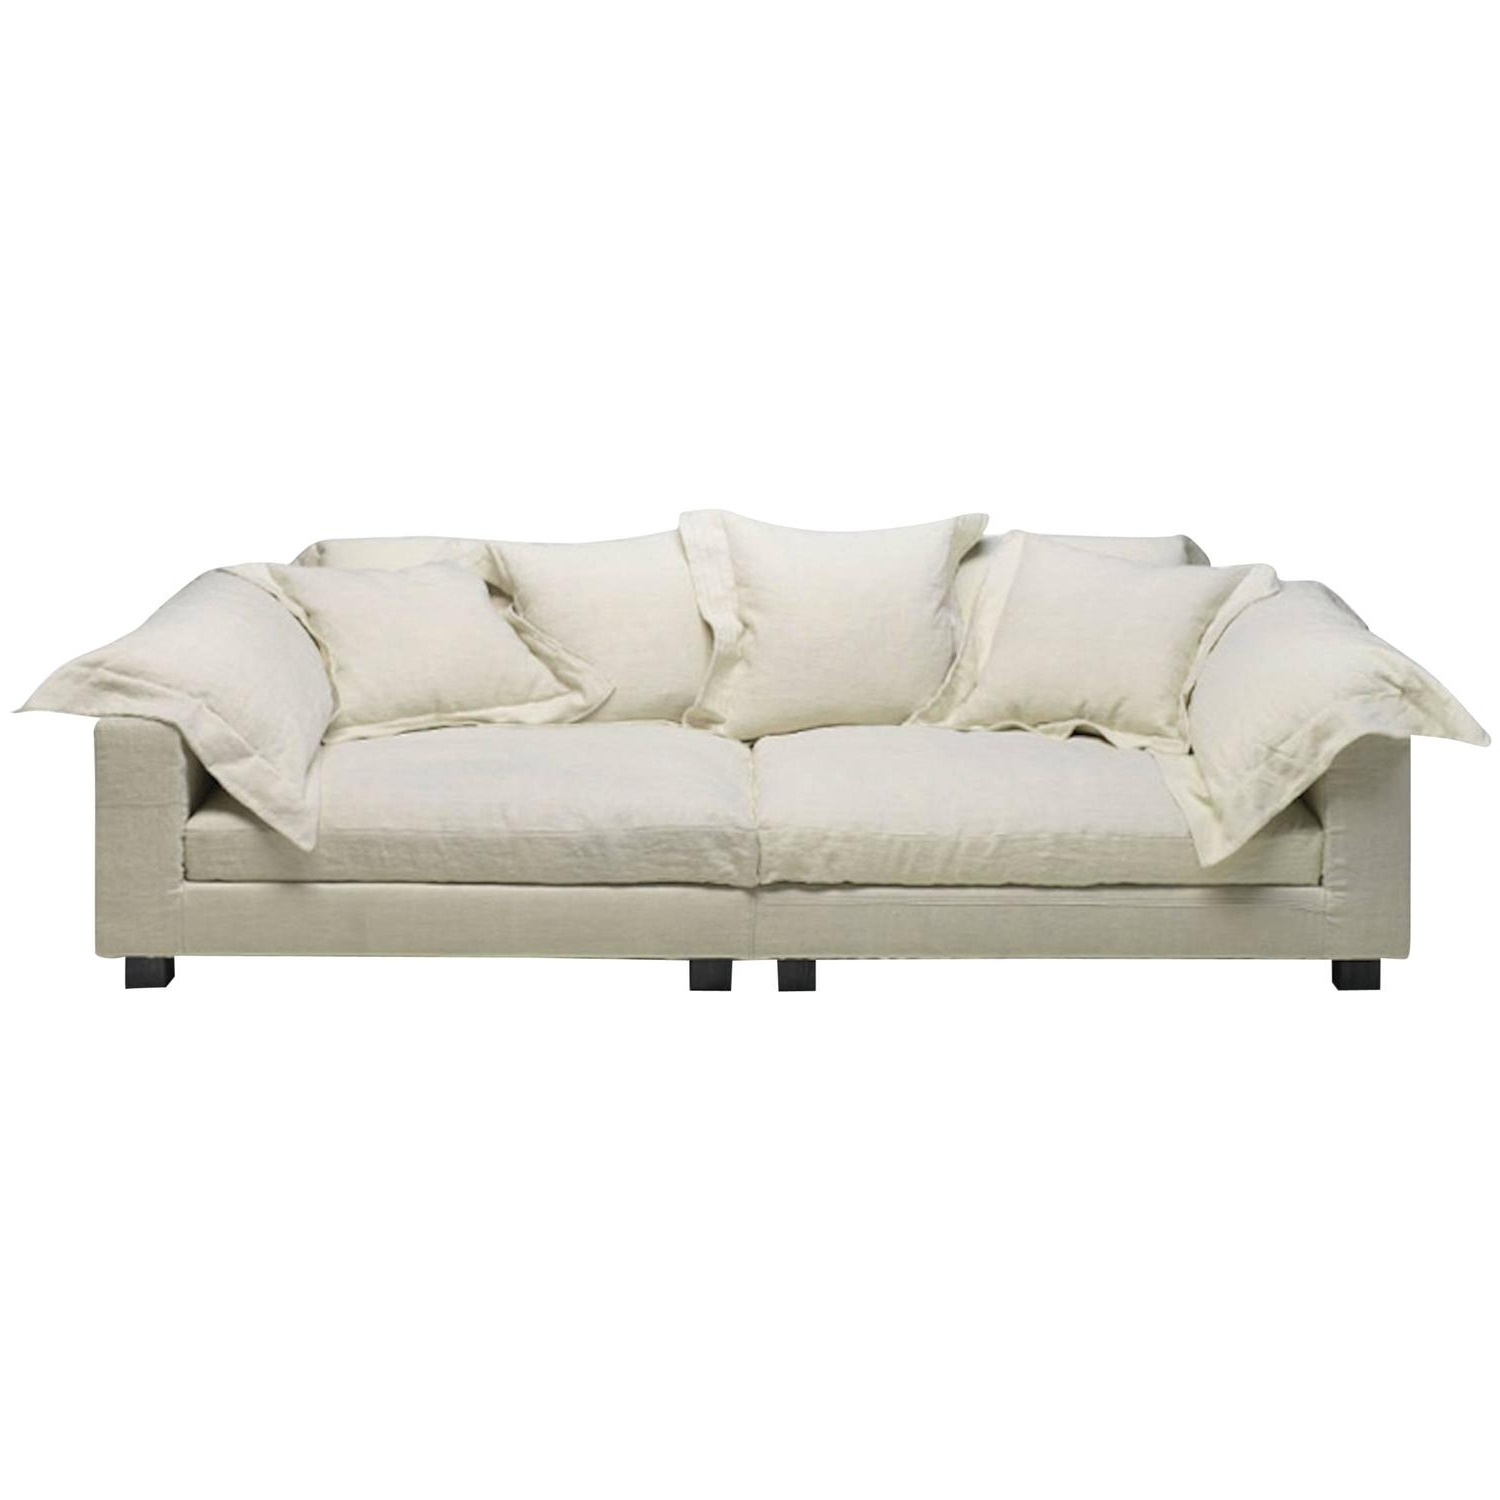 Widely Used Antique Goose Down Filled Sofa For Sale At 1stdibs In Down Filled Sofas (View 19 of 20)